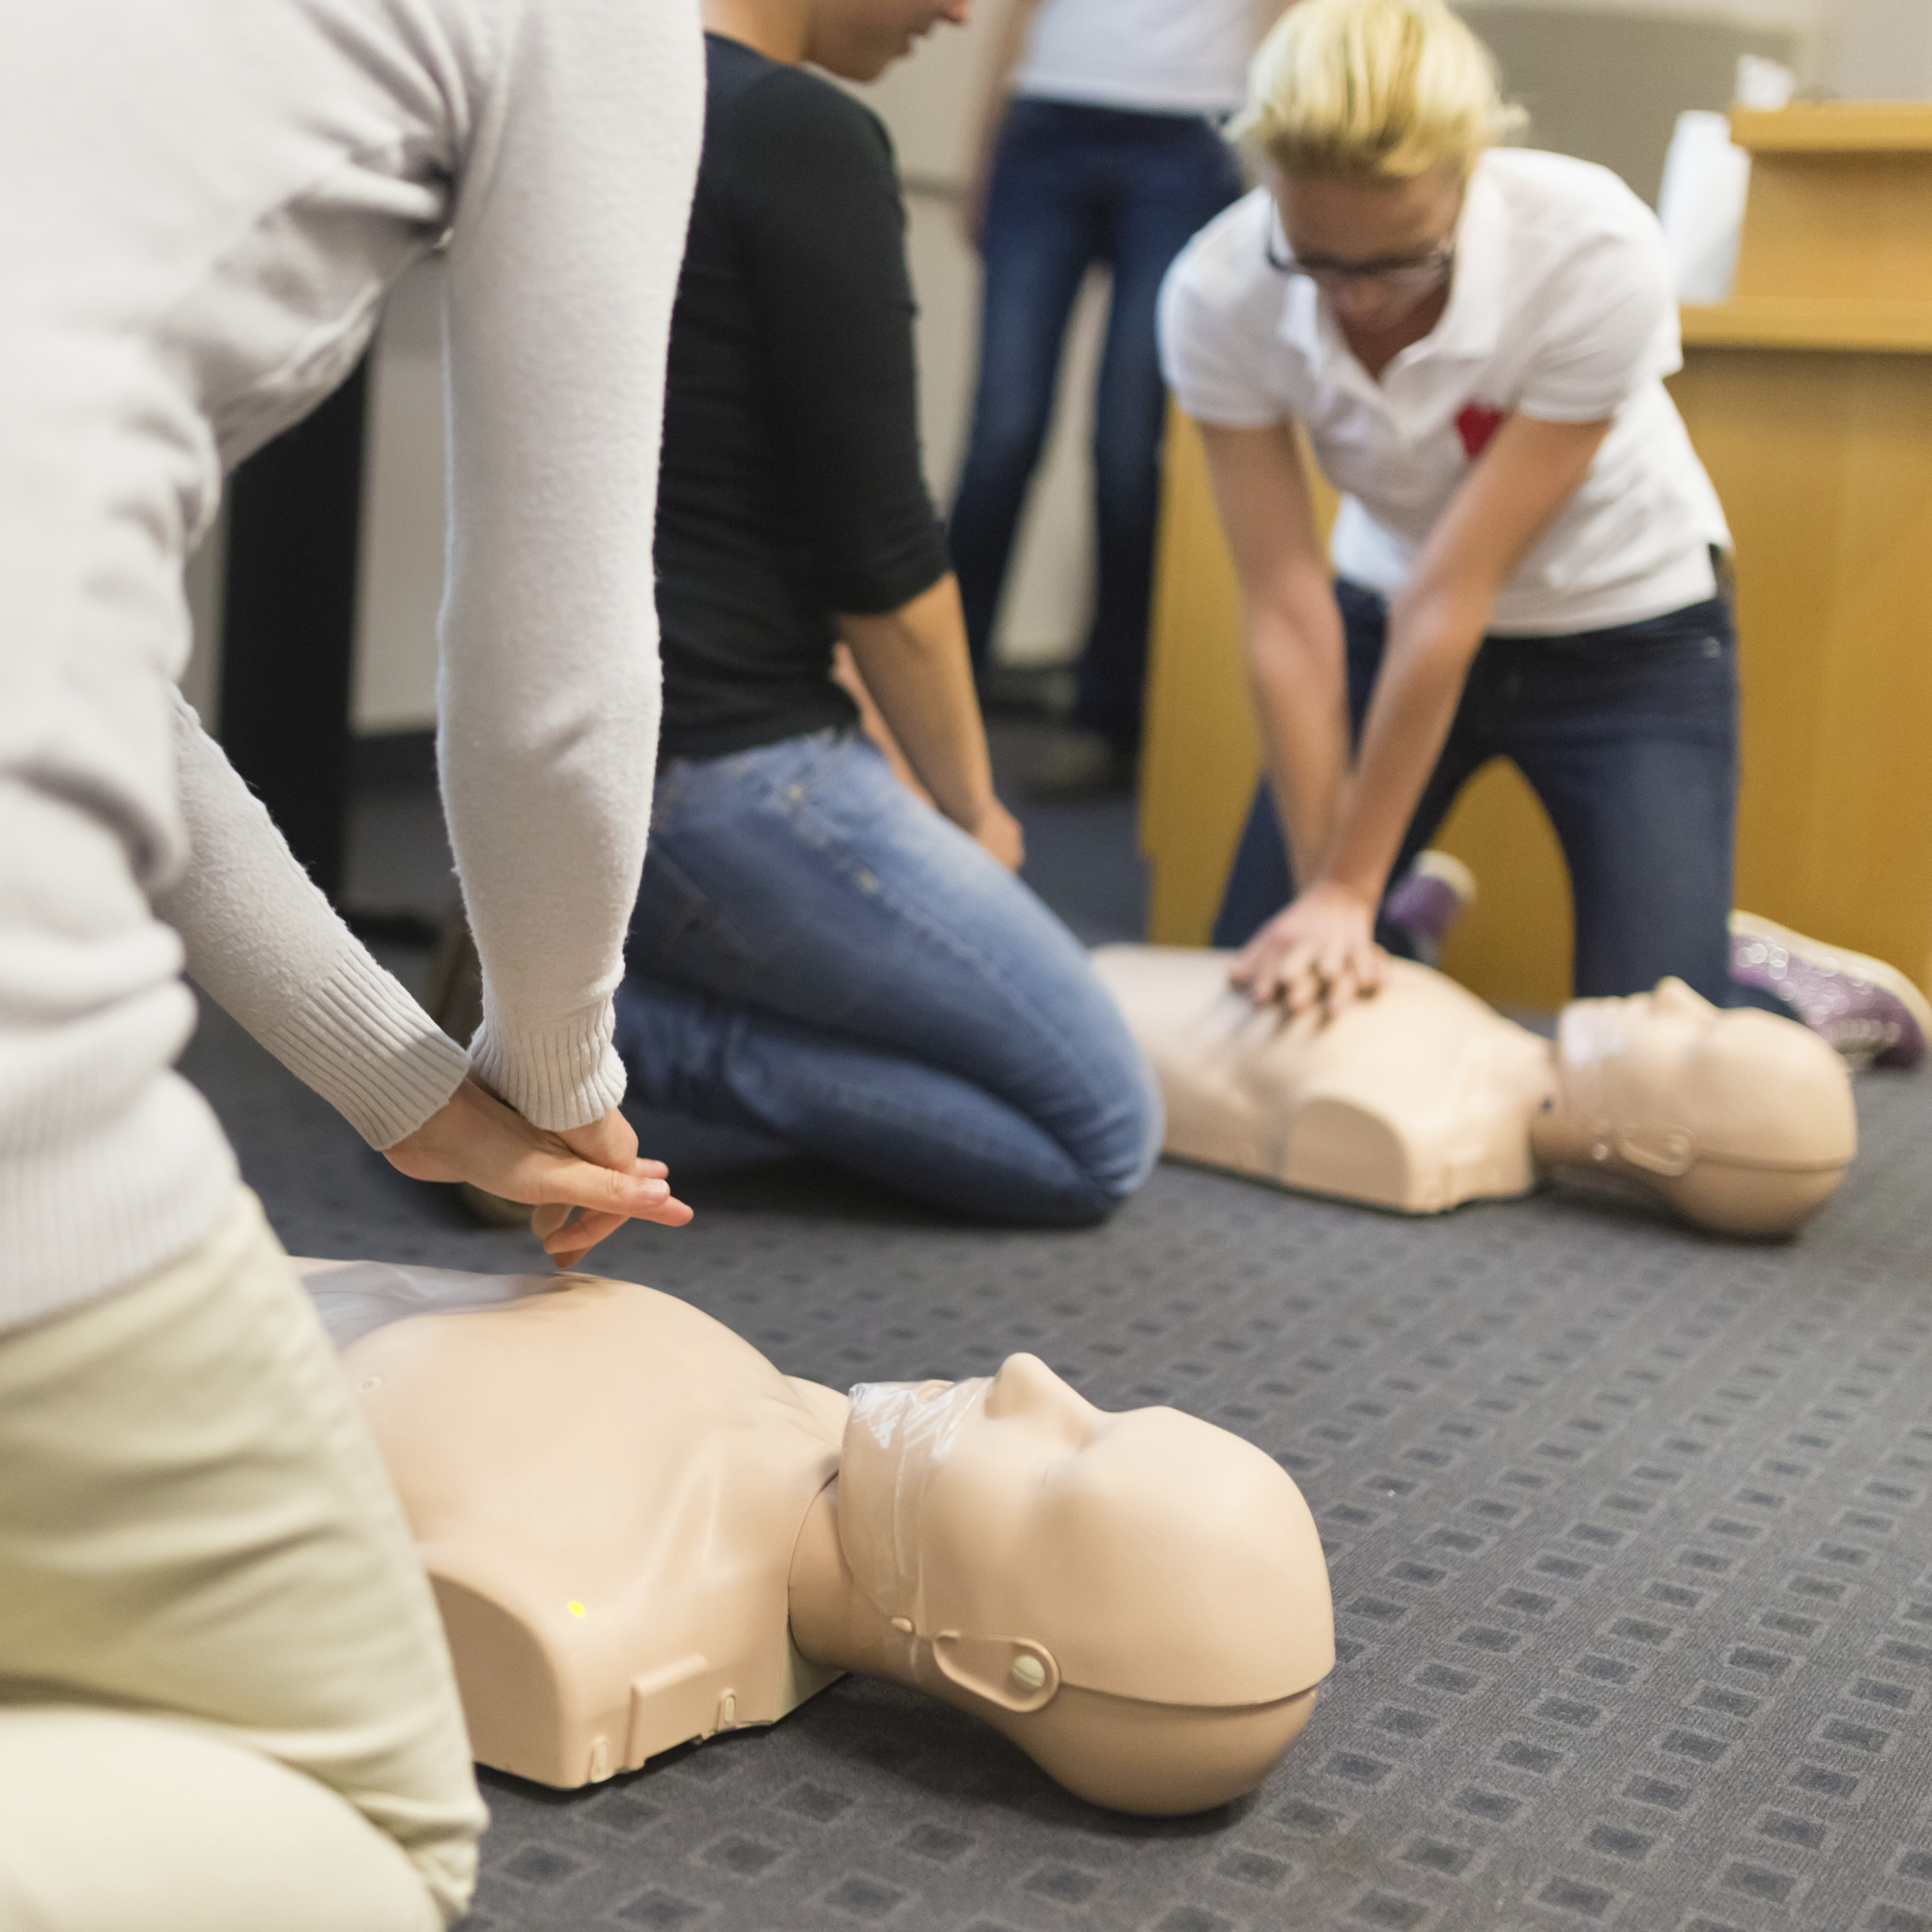 emergency first aid at work training appointed person training st johns ambulance training